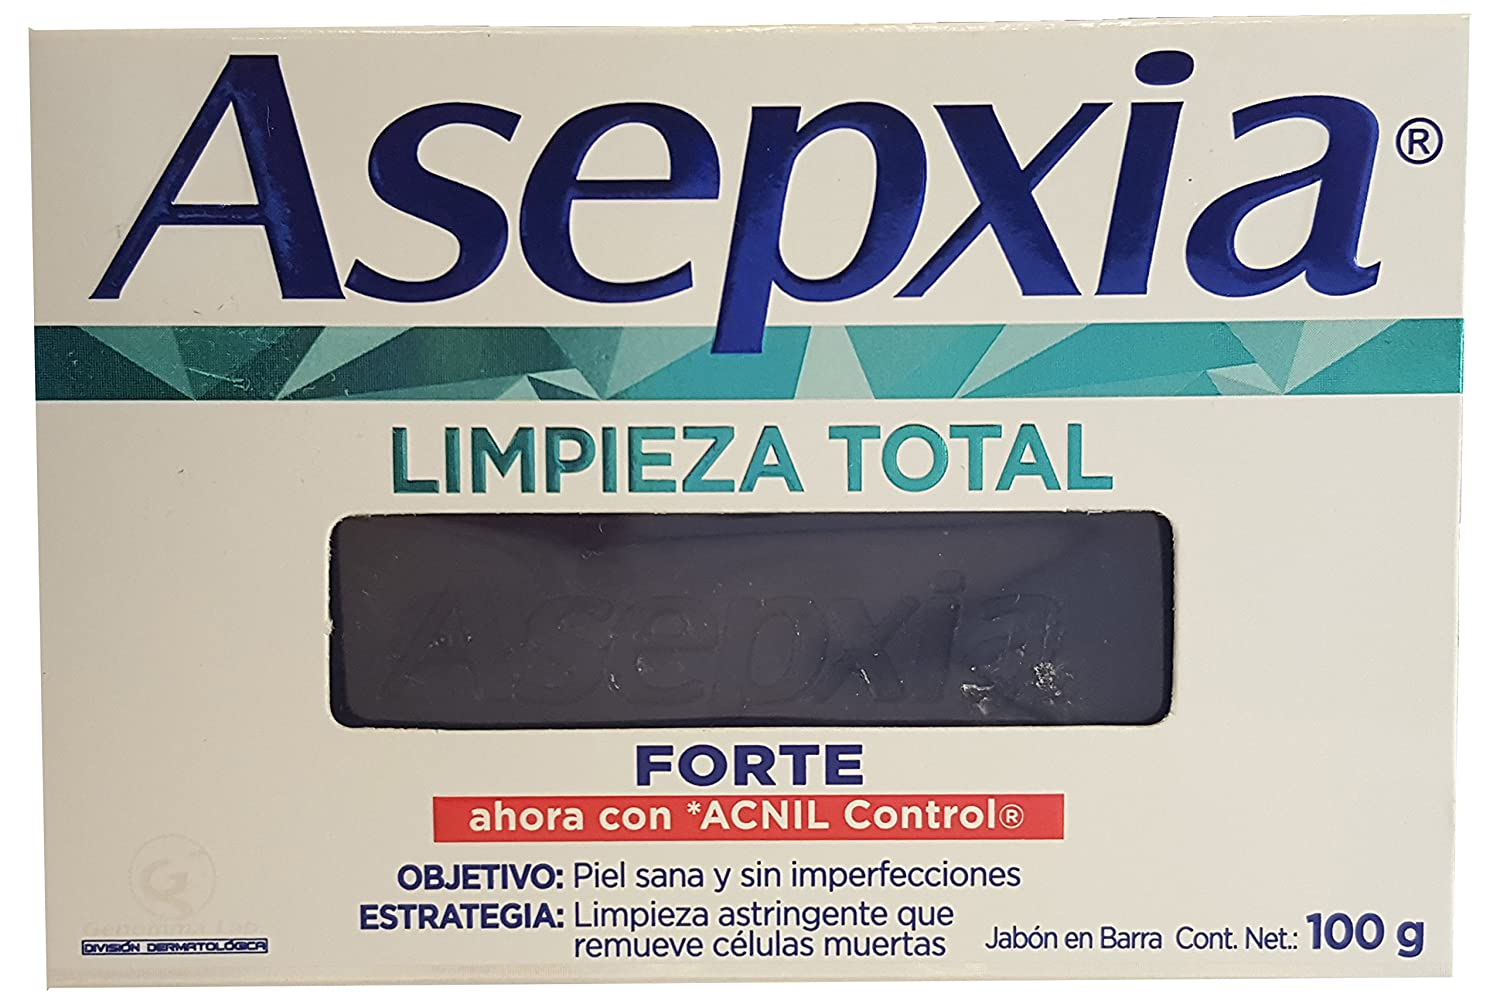 Amazon.com: Asepxia Forte Acne & Blemish Control Antiacnil Fp Soap Bar 100g (2-pack) (Asepxia Forte Acne & Blemish Control Antiacnil Fp Soap Bar 100g ...